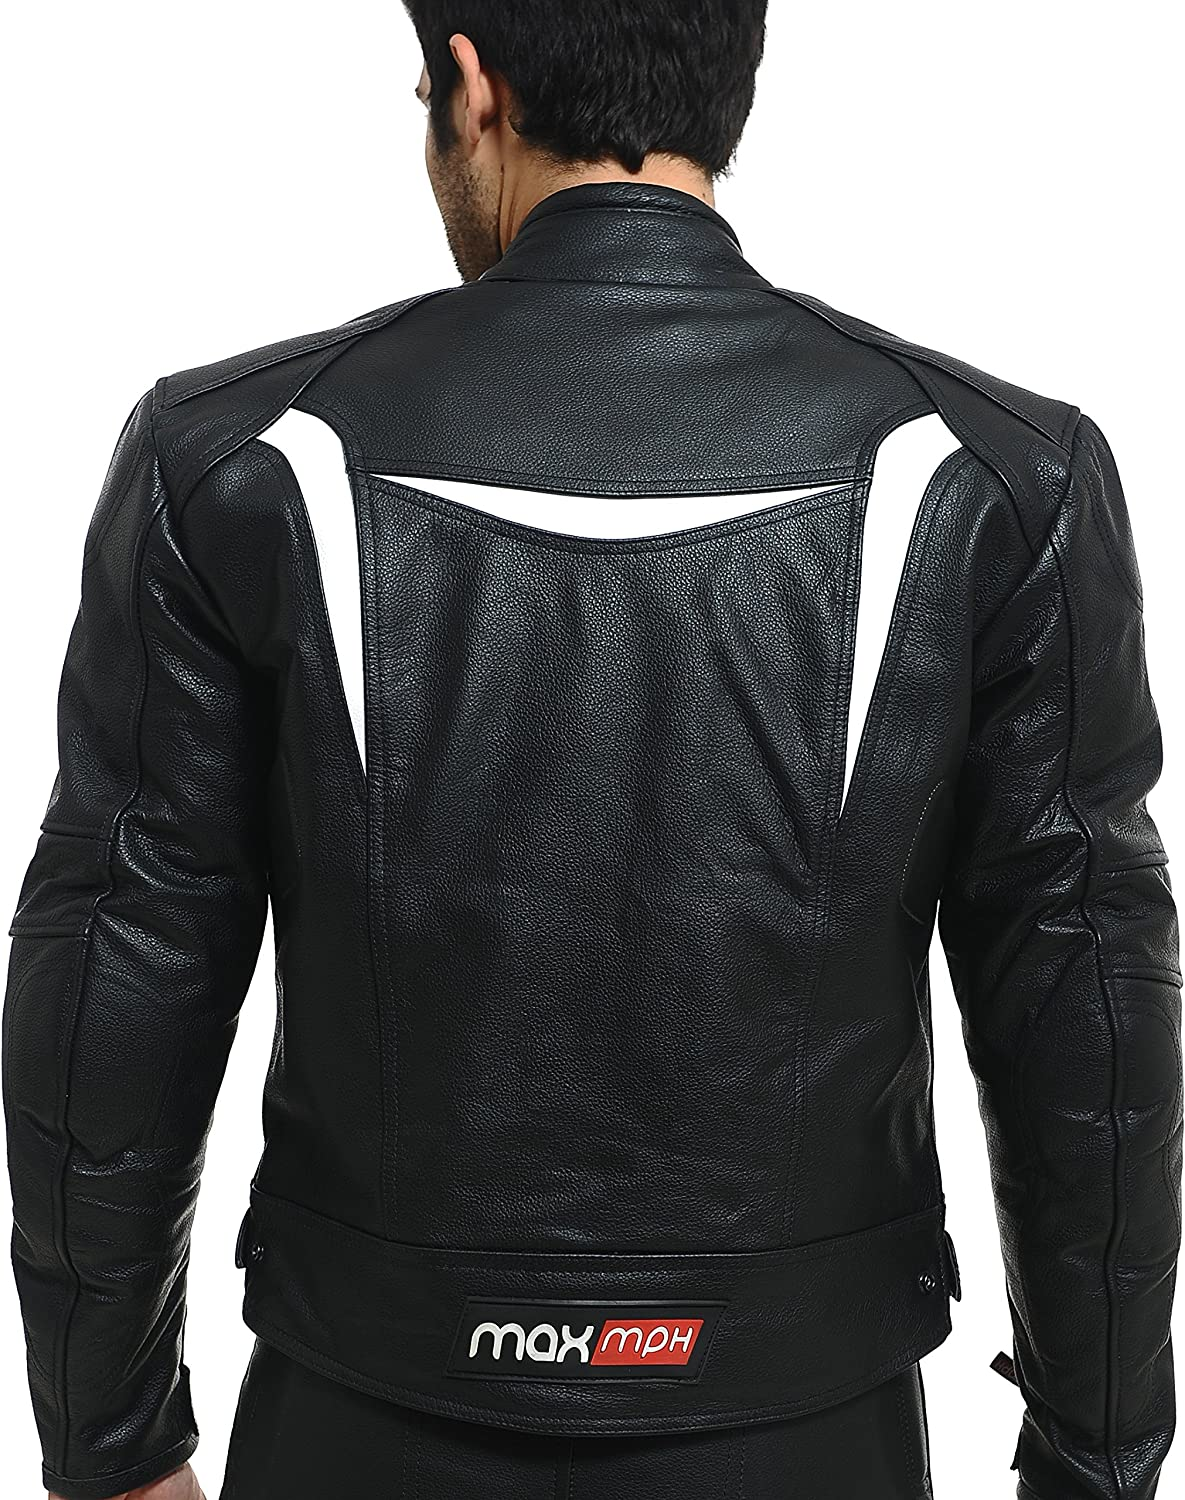 Max Mph Ultimate Pantalon de moto en cuir Protection CE amovible